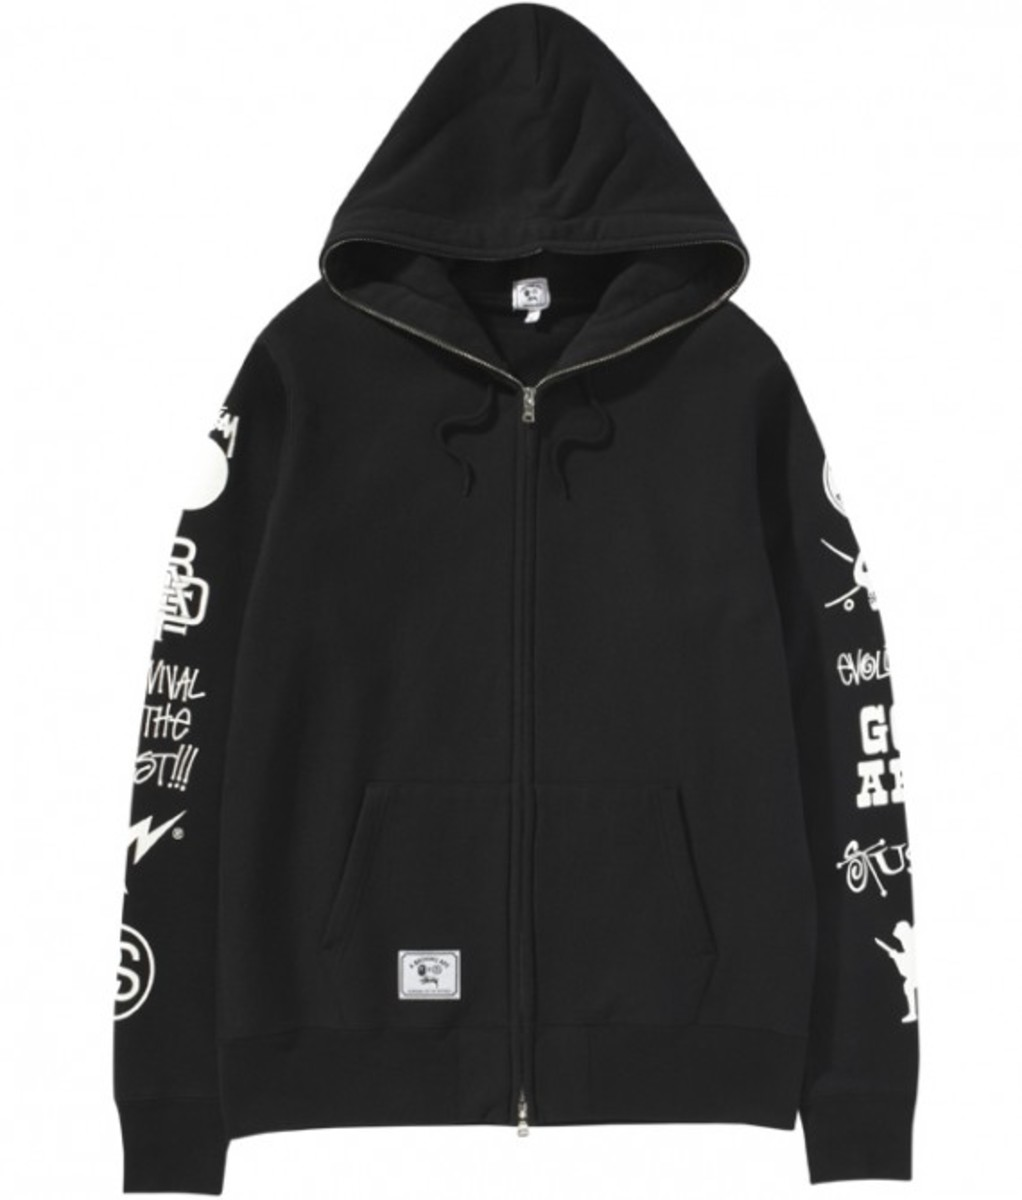 stussy-bape-survival-of-the-fittest-2-23